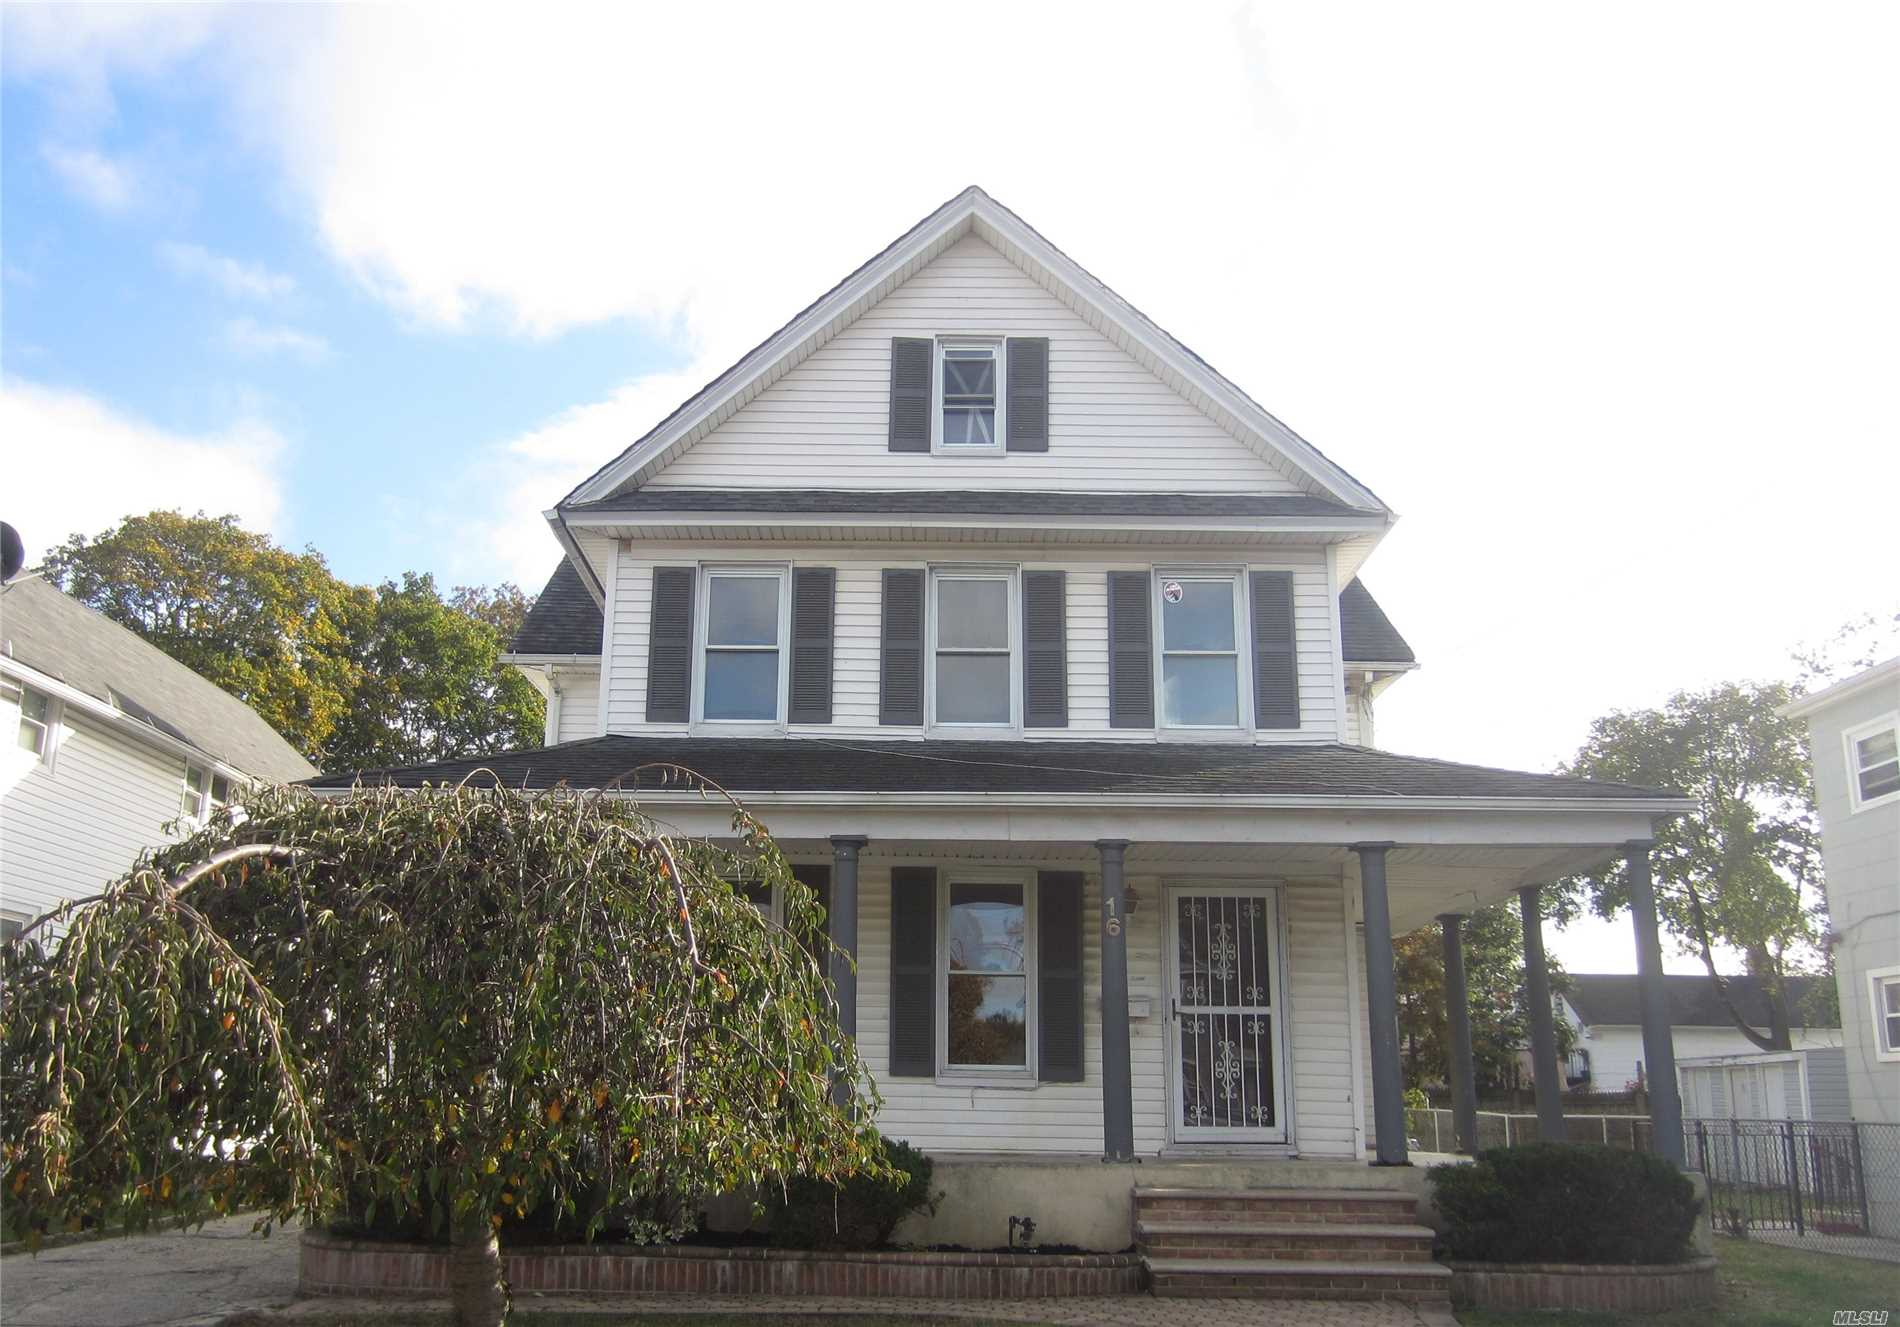 This Is A Fannie Mae Homepath Property. This Charming And Spacious, Old Style, Colonial, Features 5 Bedrooms, 2 Bathrooms, Partial Wrap-Around Porch, 2 Car Garage, Backyard And So Much More! Needs A Little Tlc.